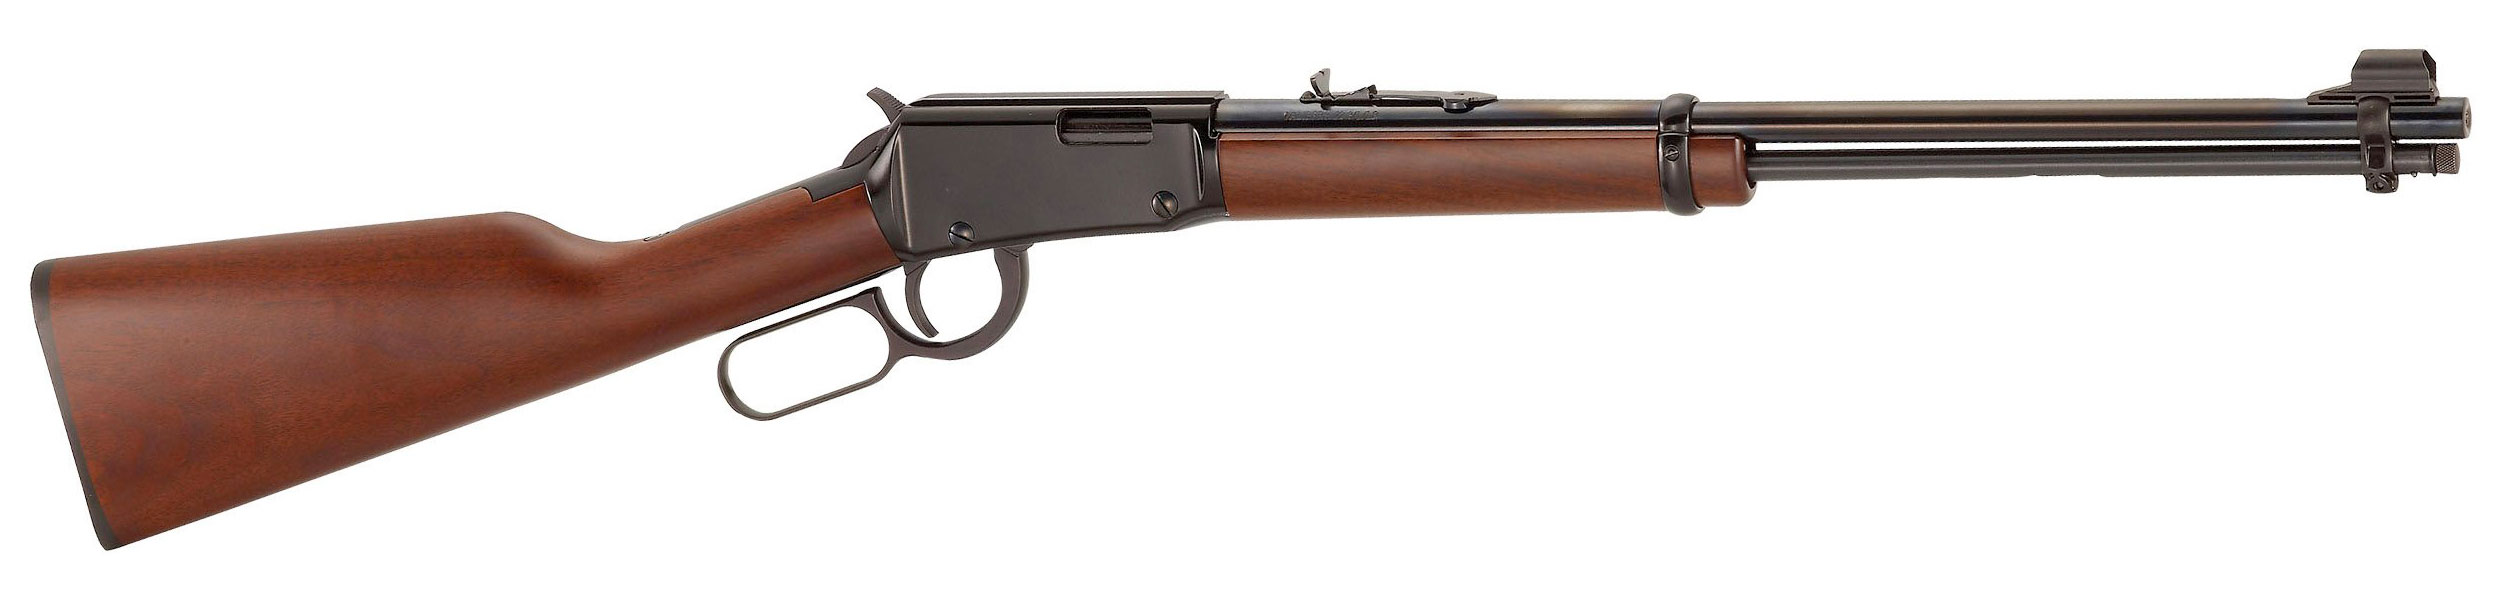 Classic Lever Action .22LR